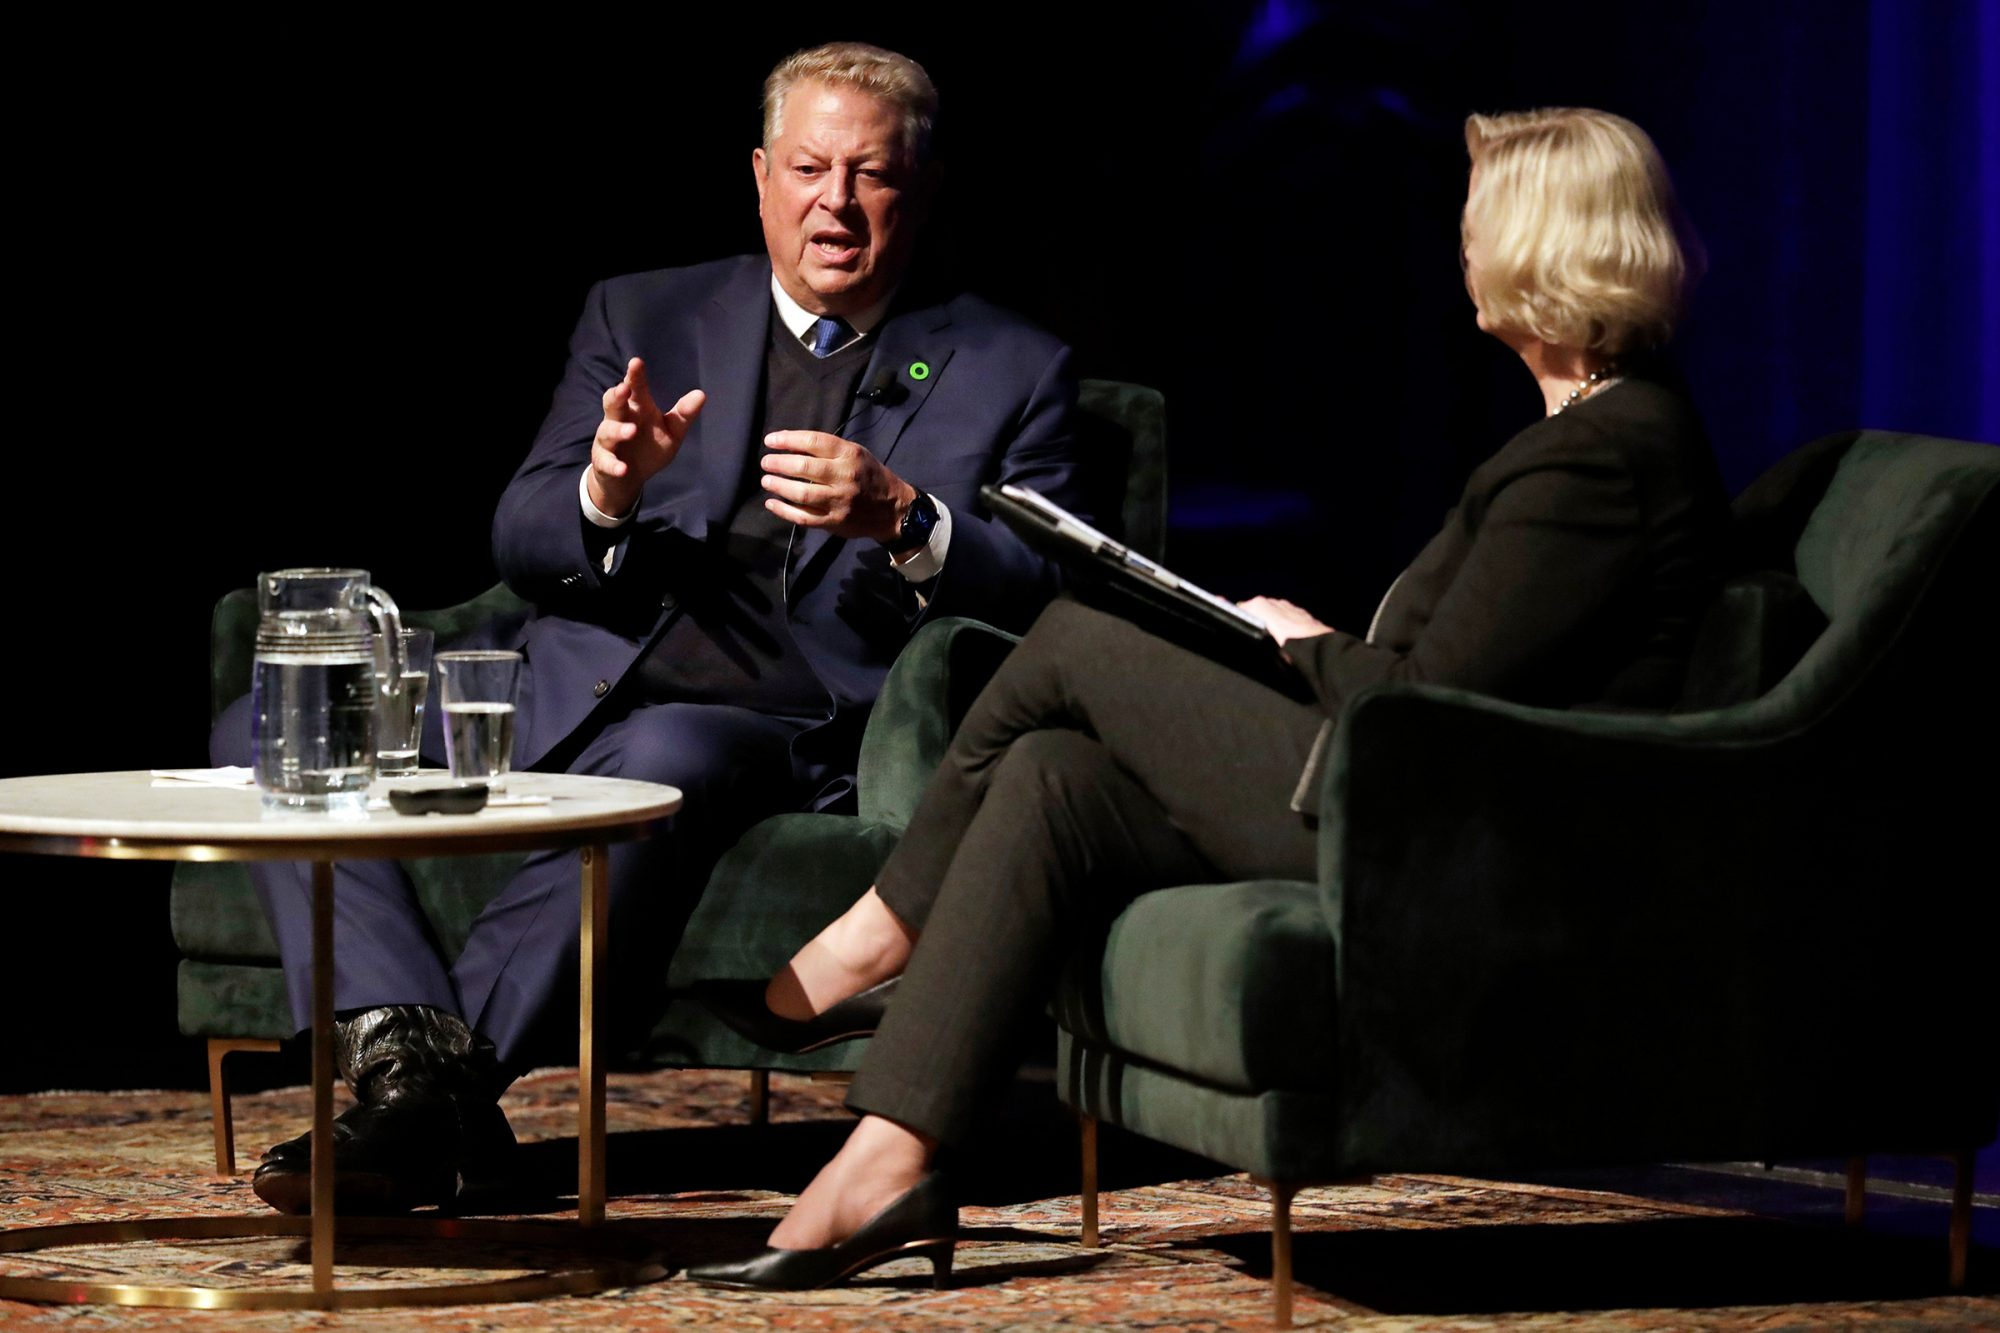 Al Gore, Susan Wente. Former Vice President Al Gore speaks with Susan Wente, Vanderbilt University interim provost and chancellor, in Nashville, Tenn. Earlier Gore spoke on climate change as part of a worldwide event called 24 Hours of Reality: Truth in Action Gore Climate Change, Nashville, USA - 20 Nov 2019